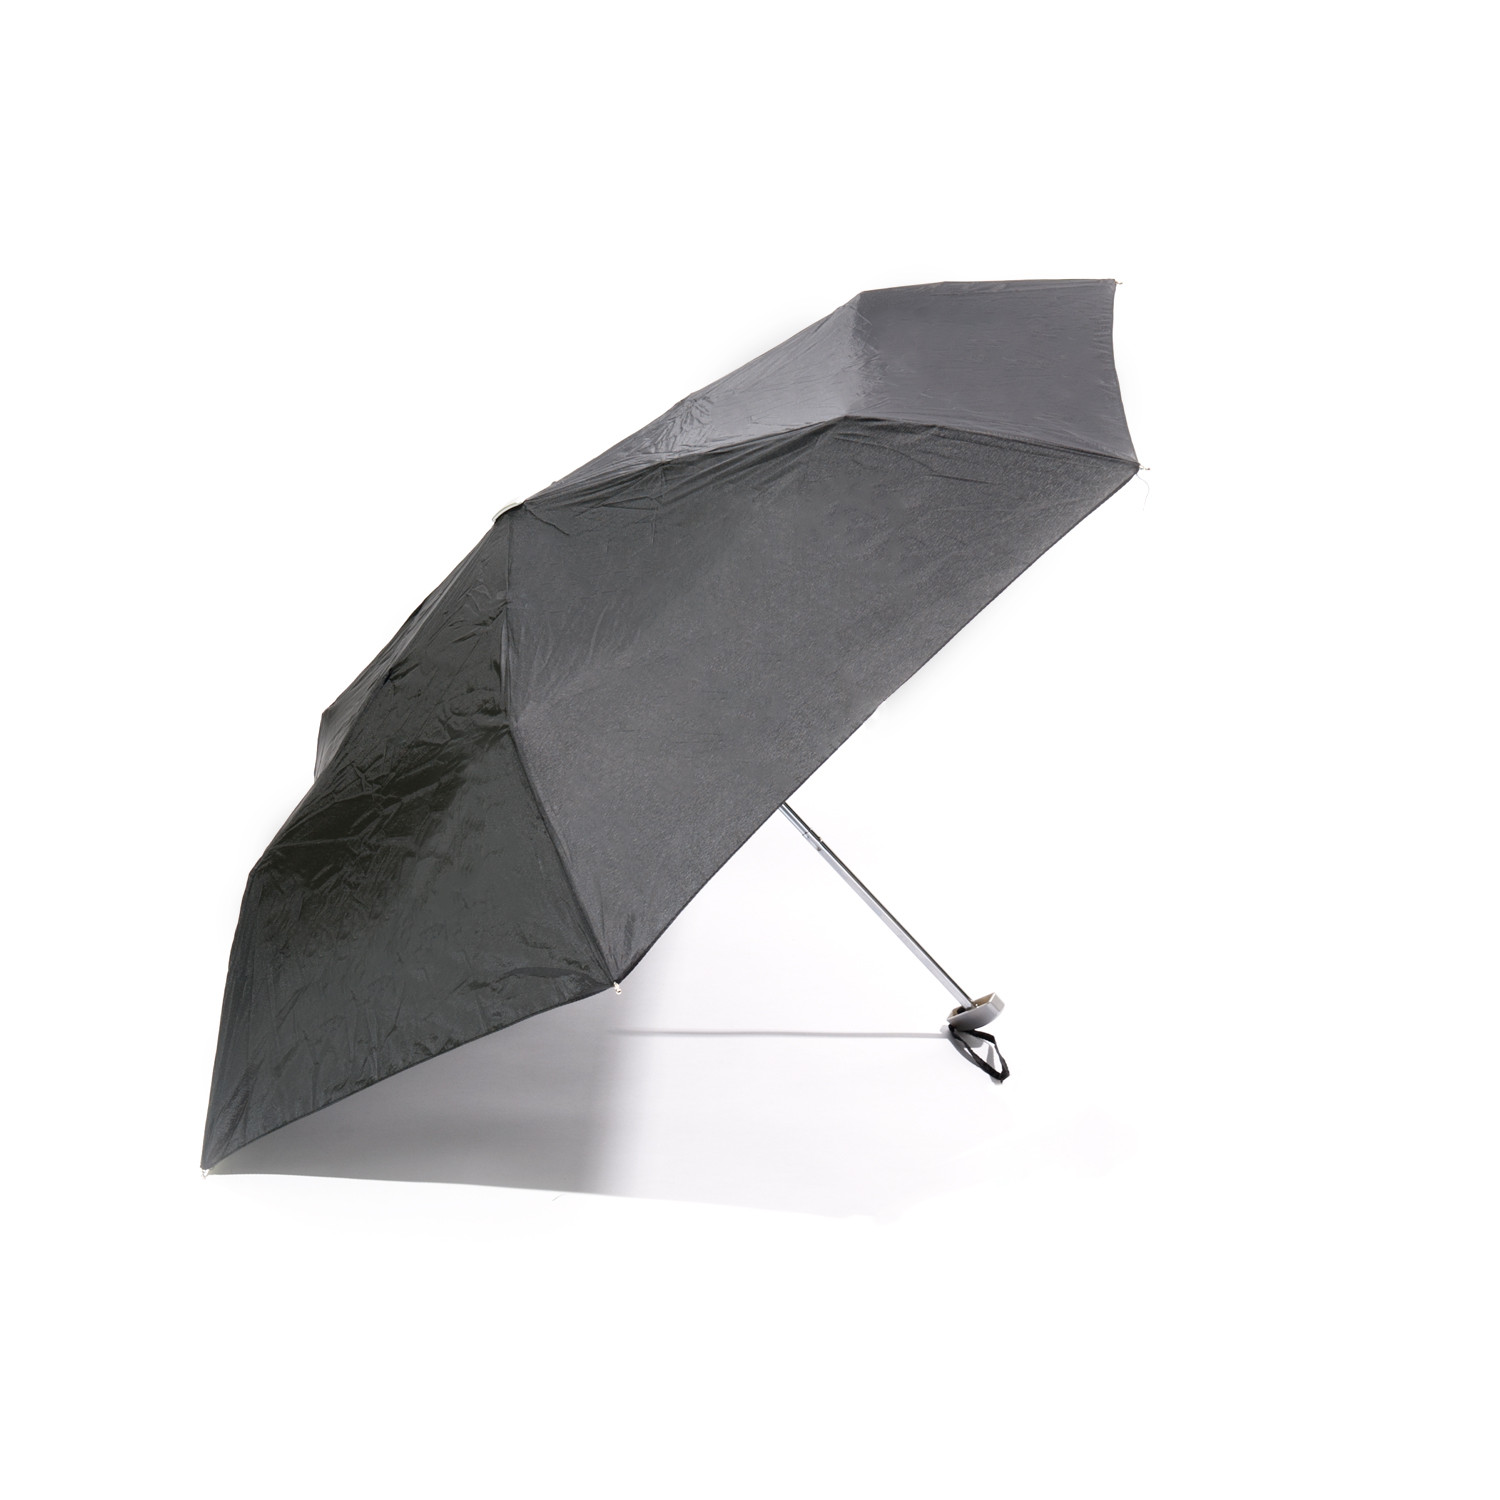 aeeaddbfealarge - london fog umbrella iconic umbrellas touch of modern